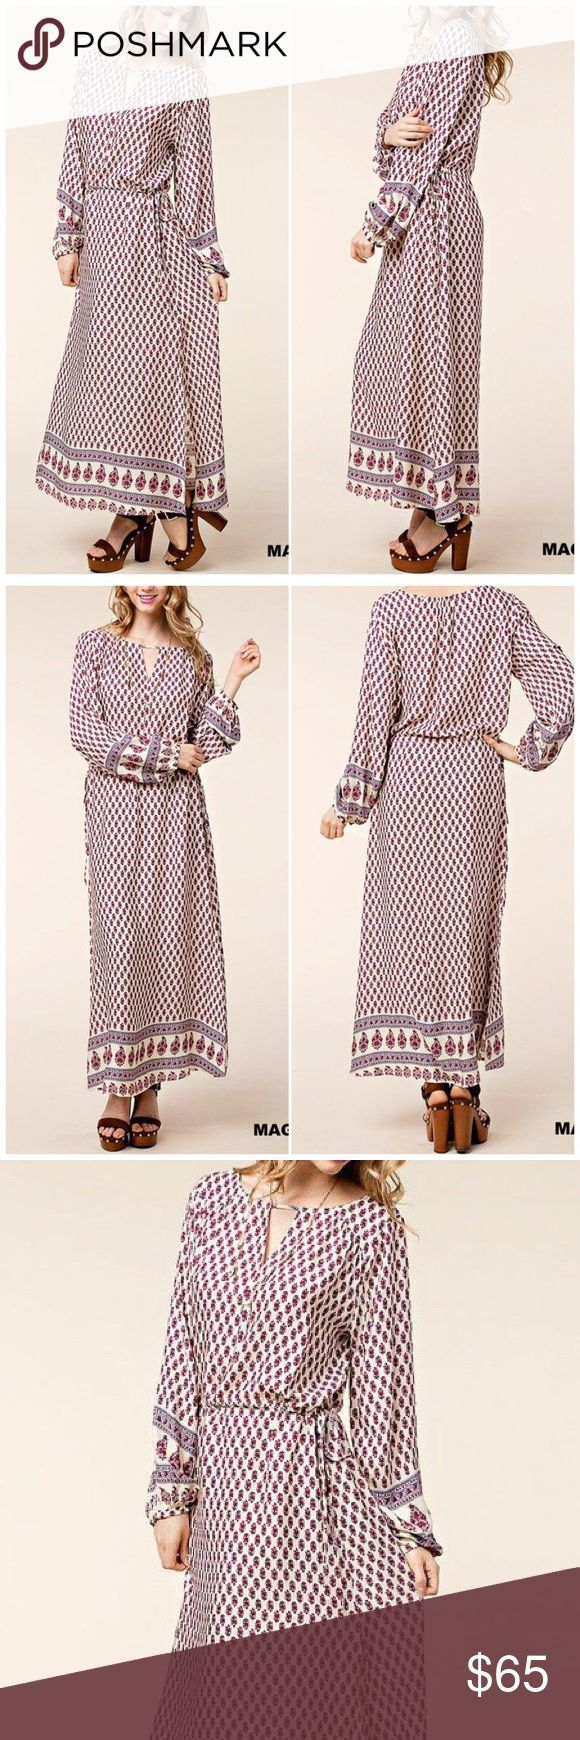 Moroccan Inspired Print Boho Maxi Dress Magenta Moroccan Print Boho Boutique Maxi Dress. Long sleeves; 2 side slits. Rayon  Fits true to size  Brand new with boutique tags B Chic Boutique Dresses Maxi